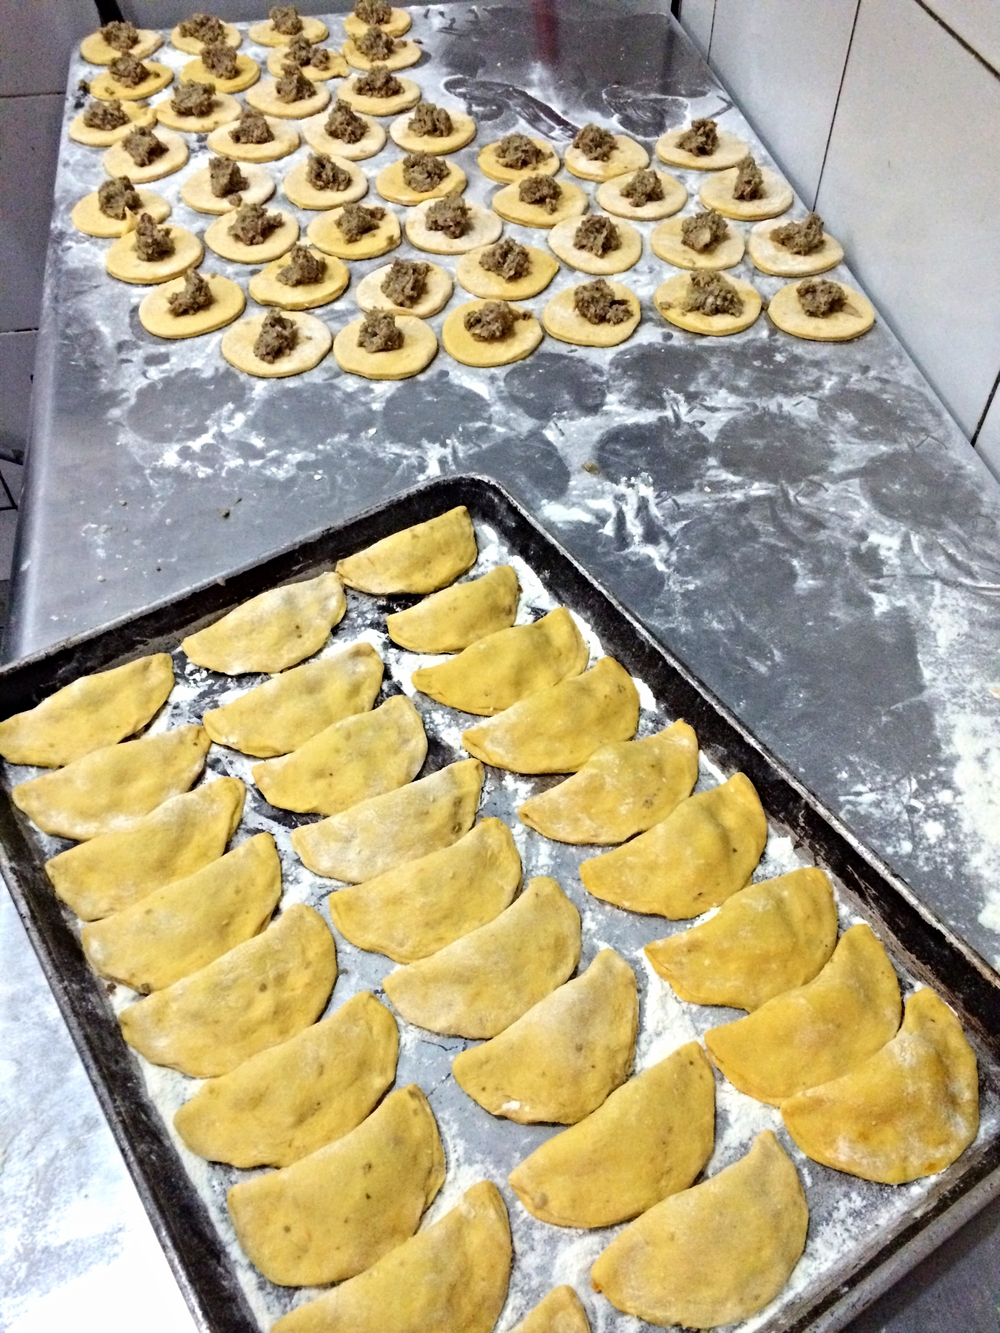 also making some lancaster mushroom stuffed dumplings for you . . . yes, we will add some brown butter and alpine asiago . . .